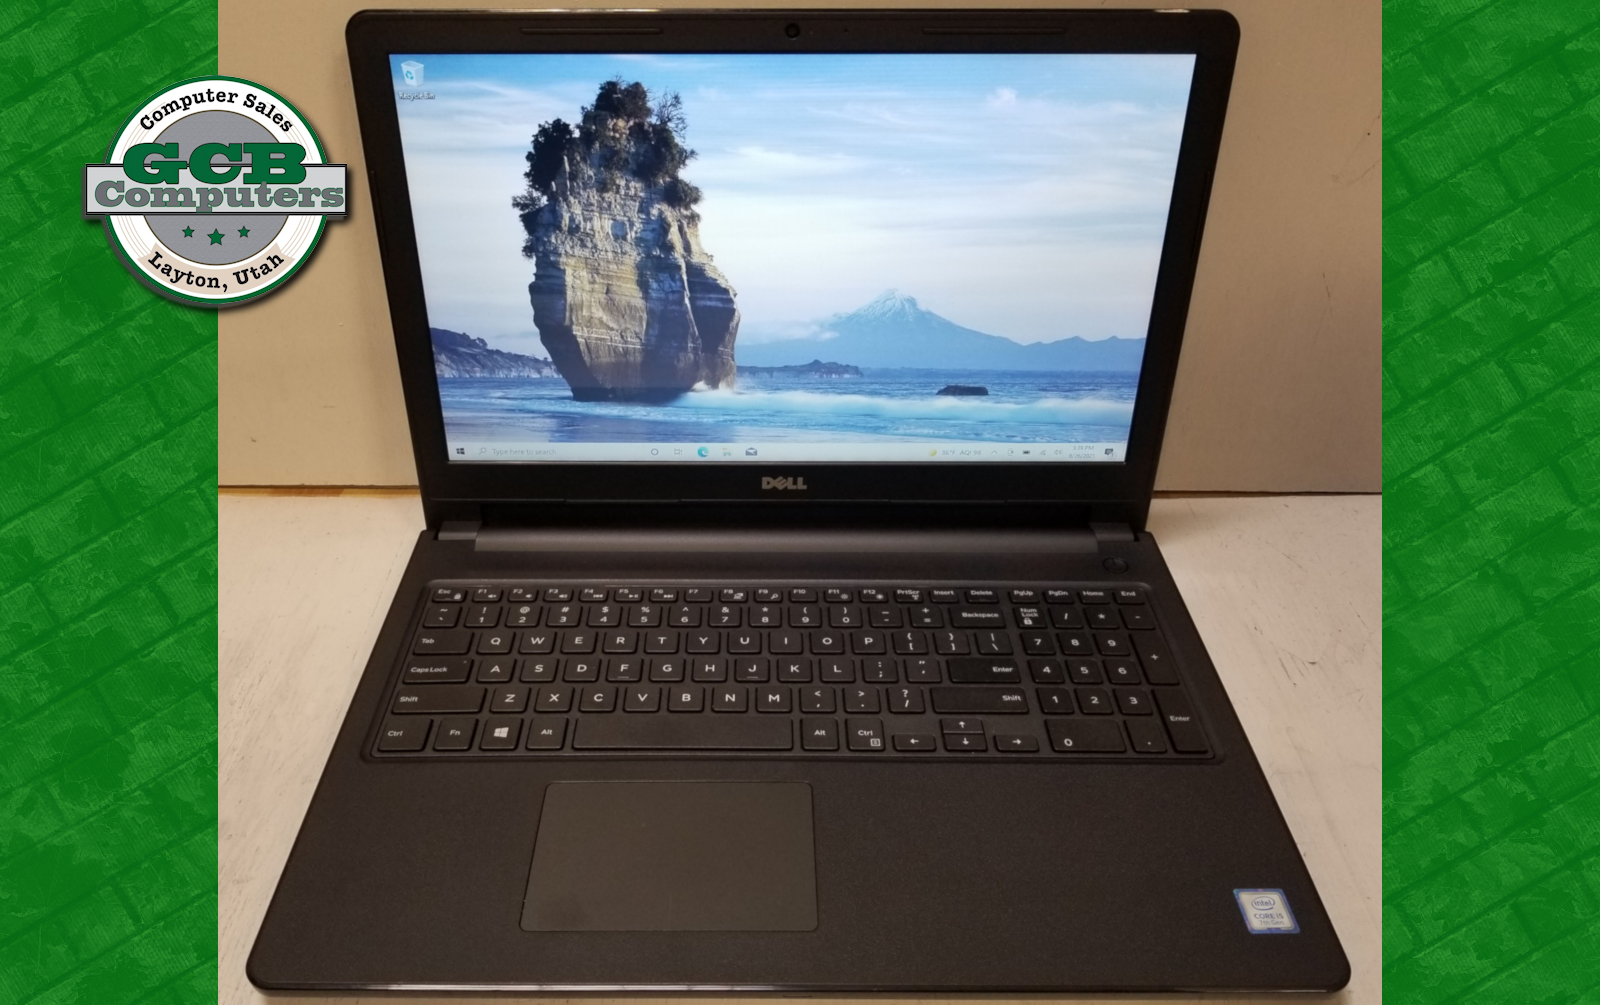 $240 Dell 3567 i5-7200 256GB SSD 8GB RAM Touch Screen